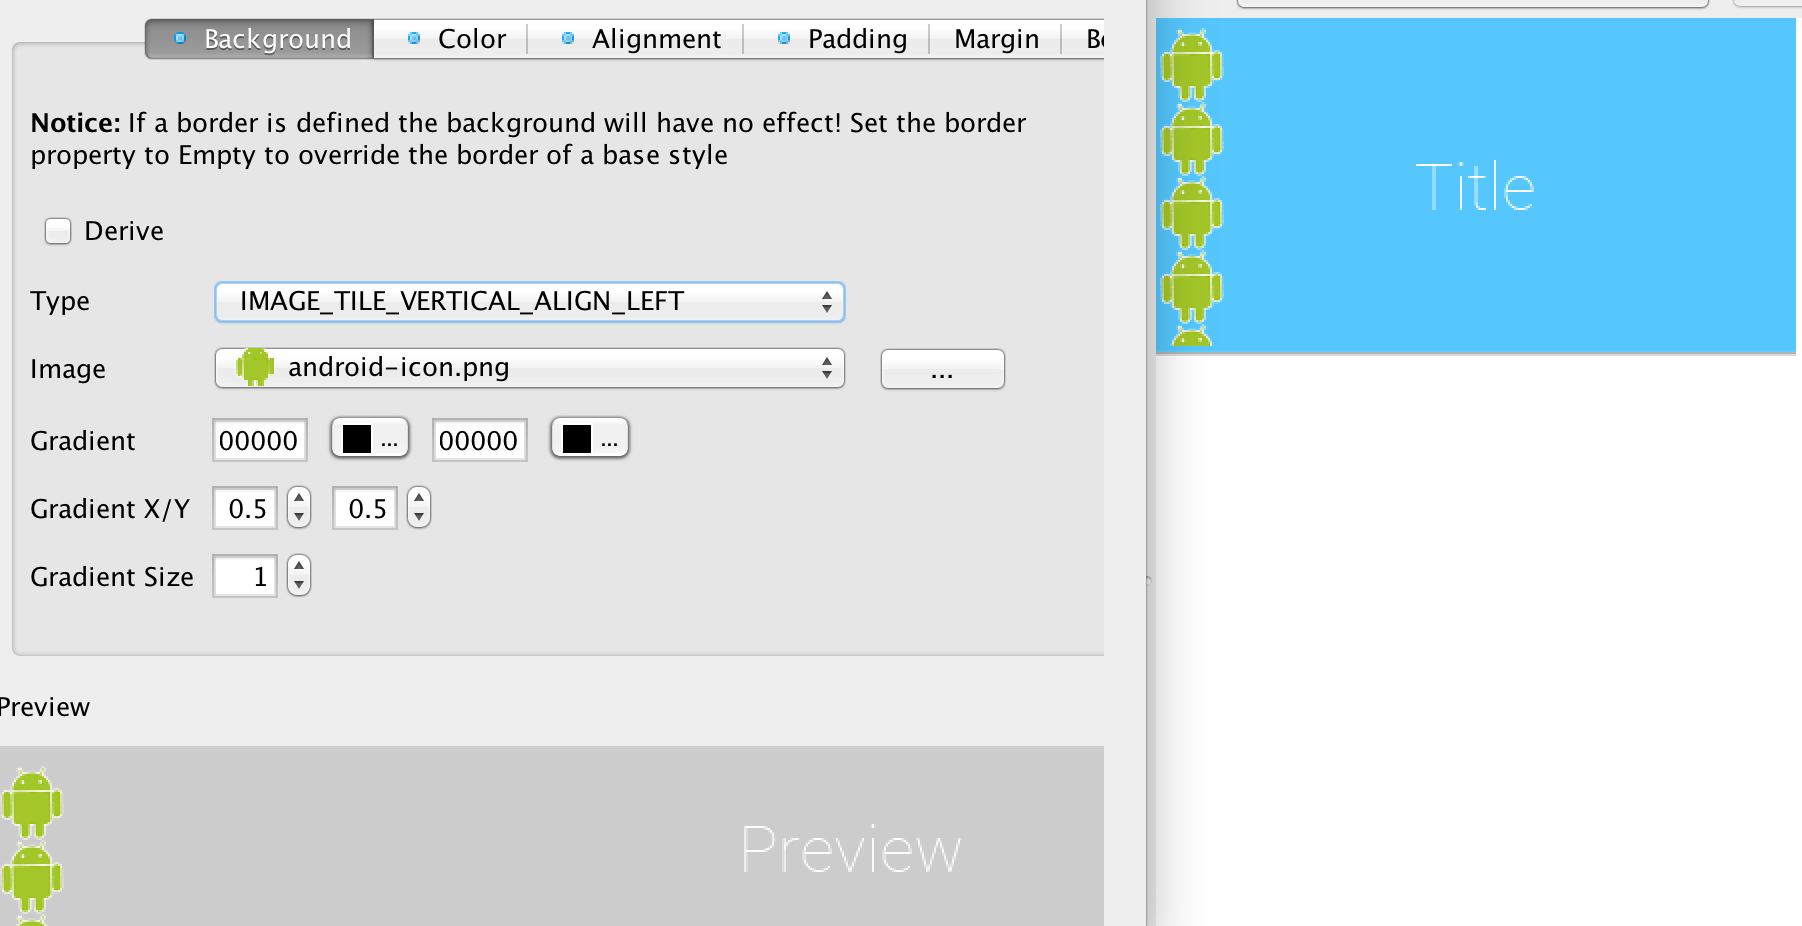 Background image align - Image_tile_vertical_align_left Tiles The Image On The Left Side Of The Component